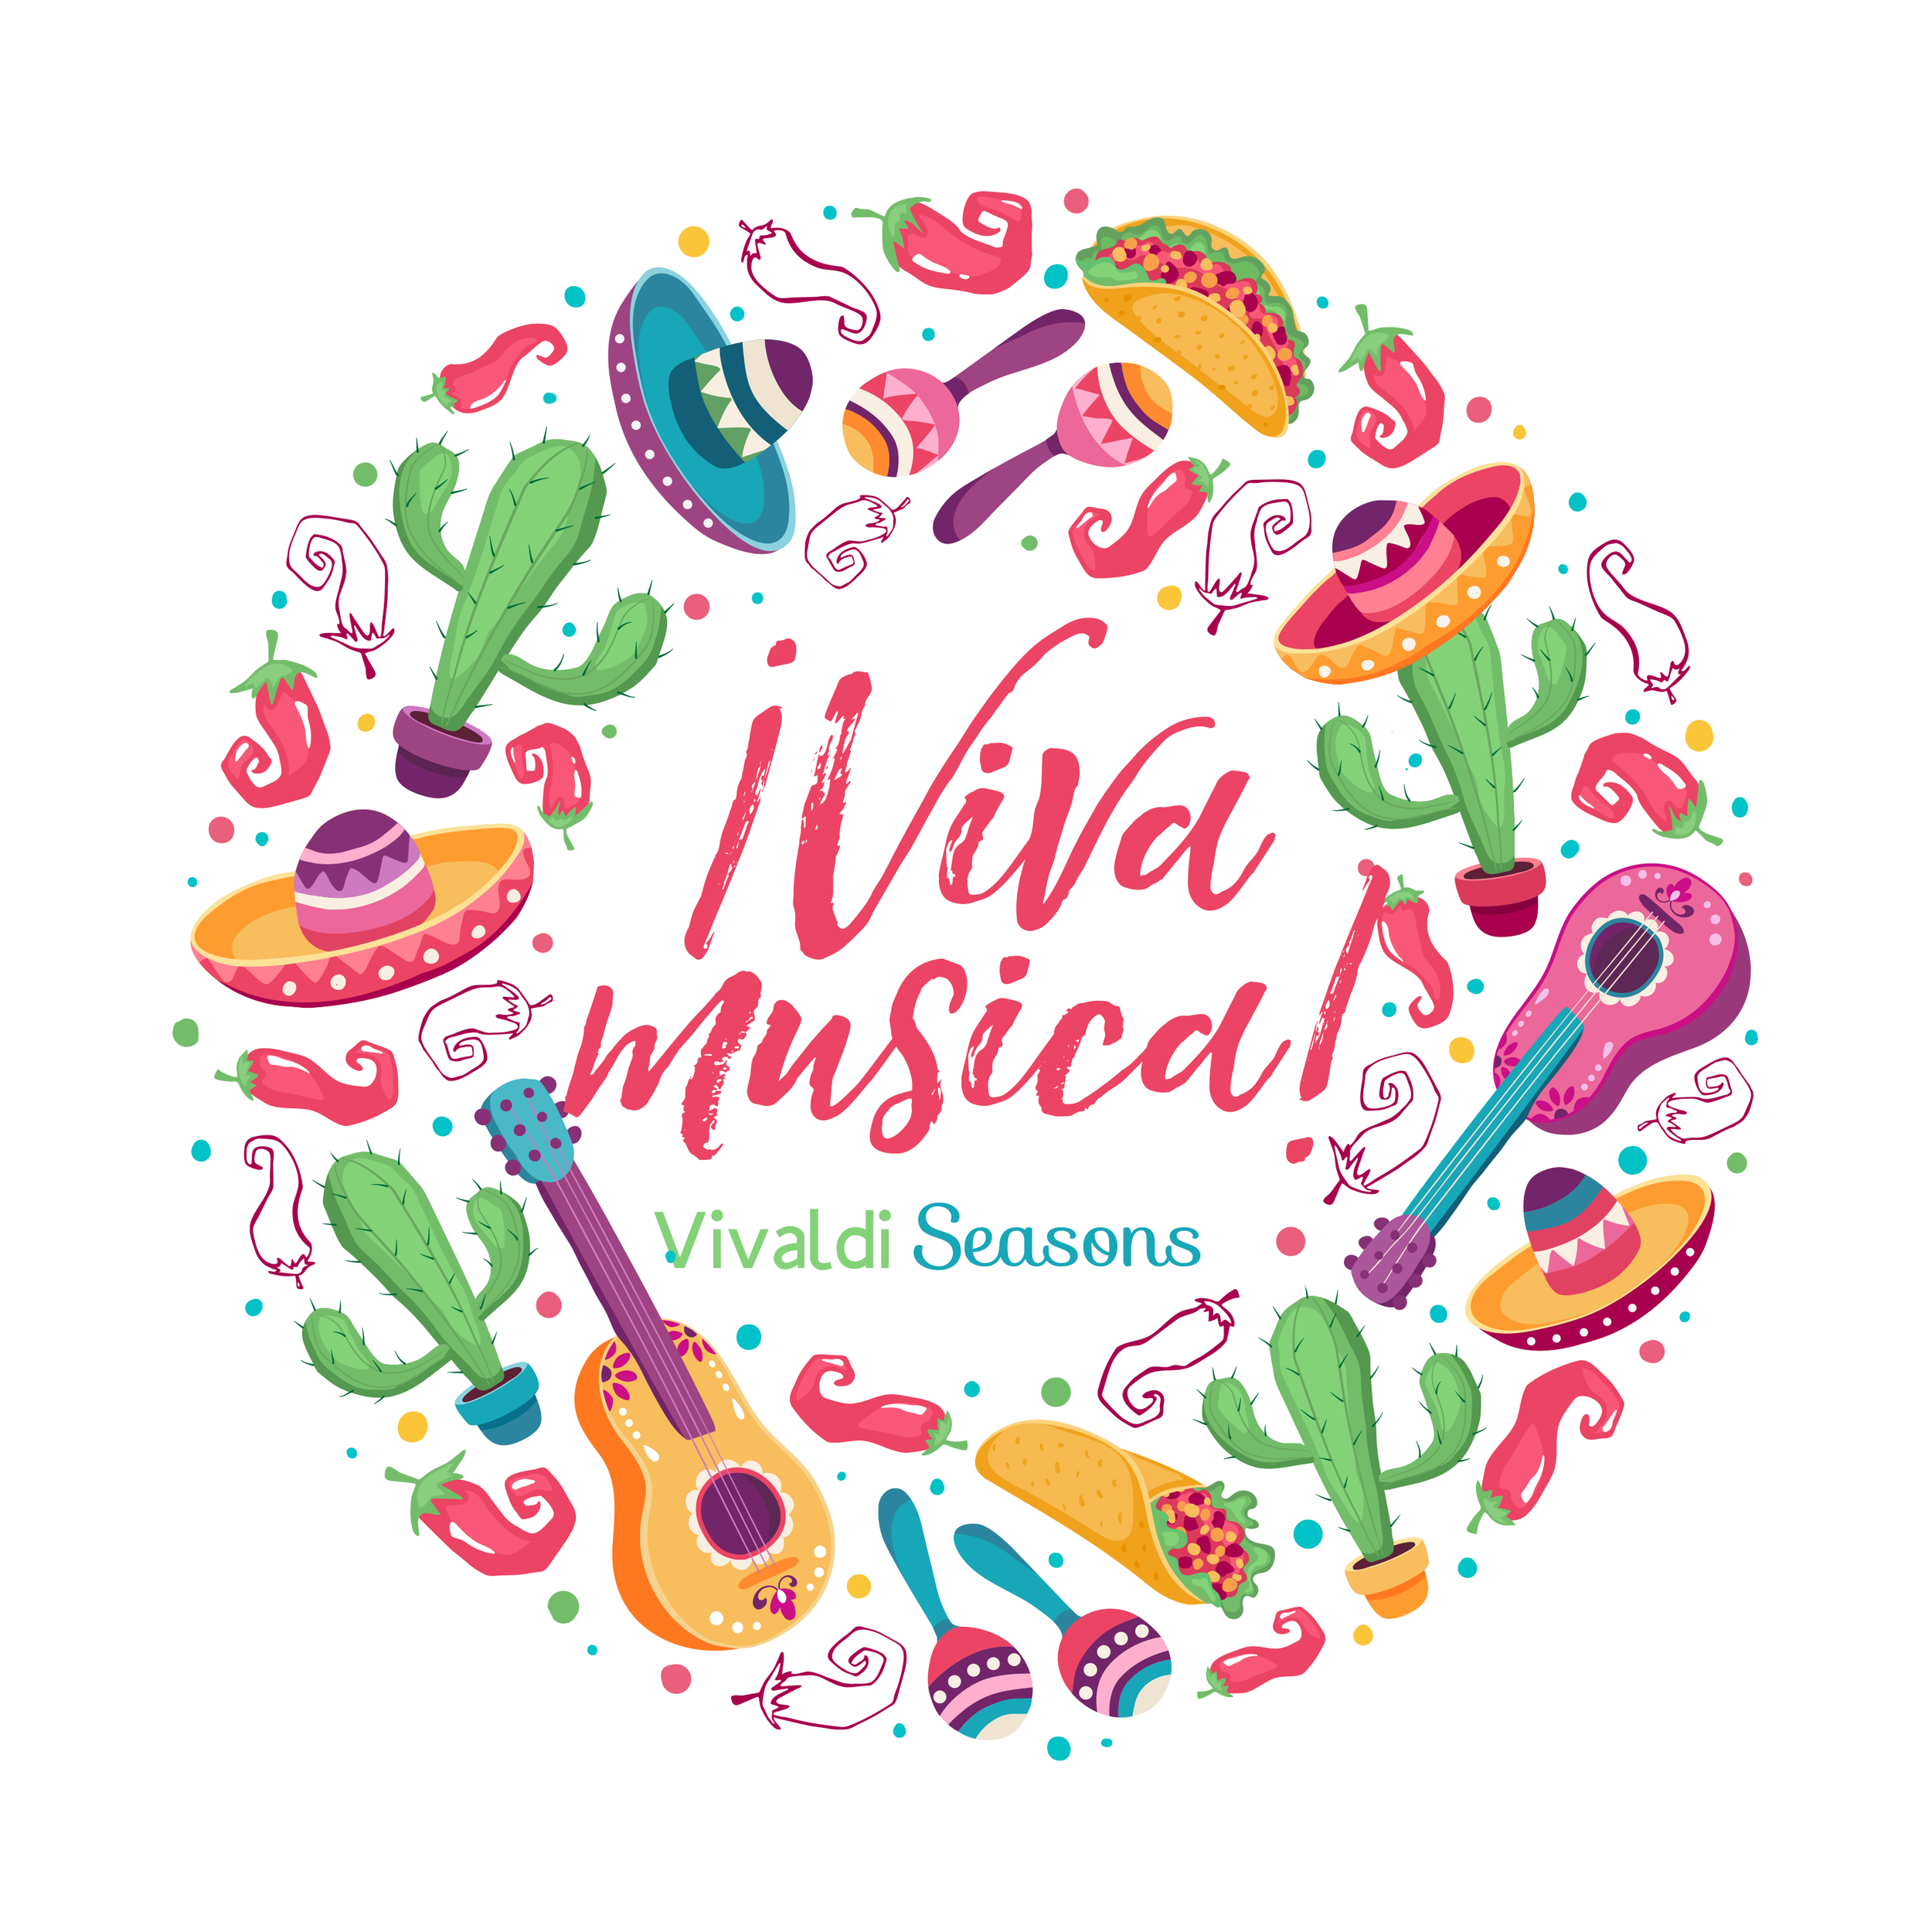 vivamusica-seasons.png